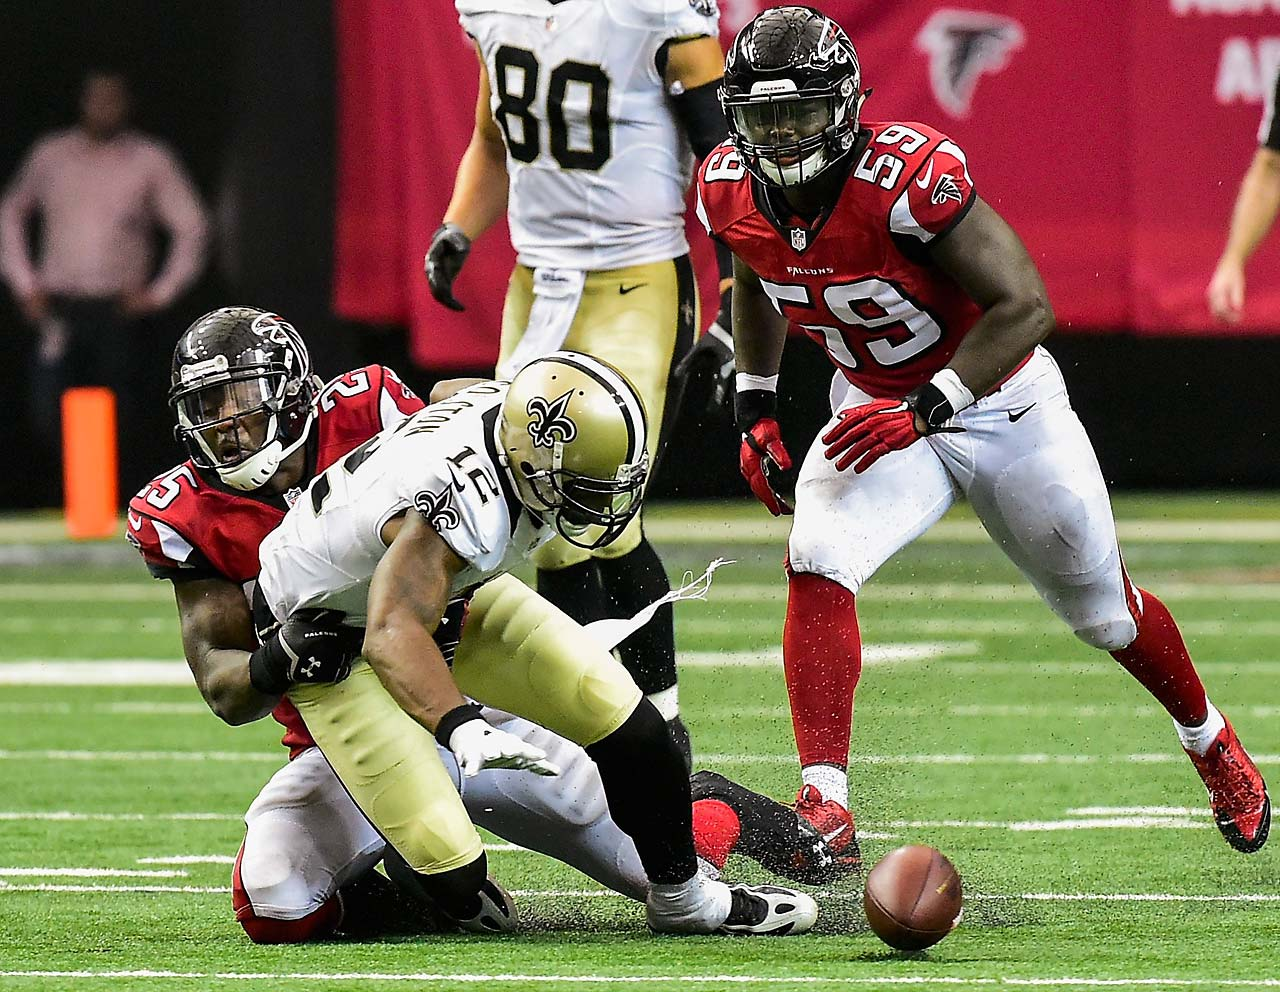 Marques Colston lost this fumble in overtime, leading to a game-winning scoring drive by the Falcons.